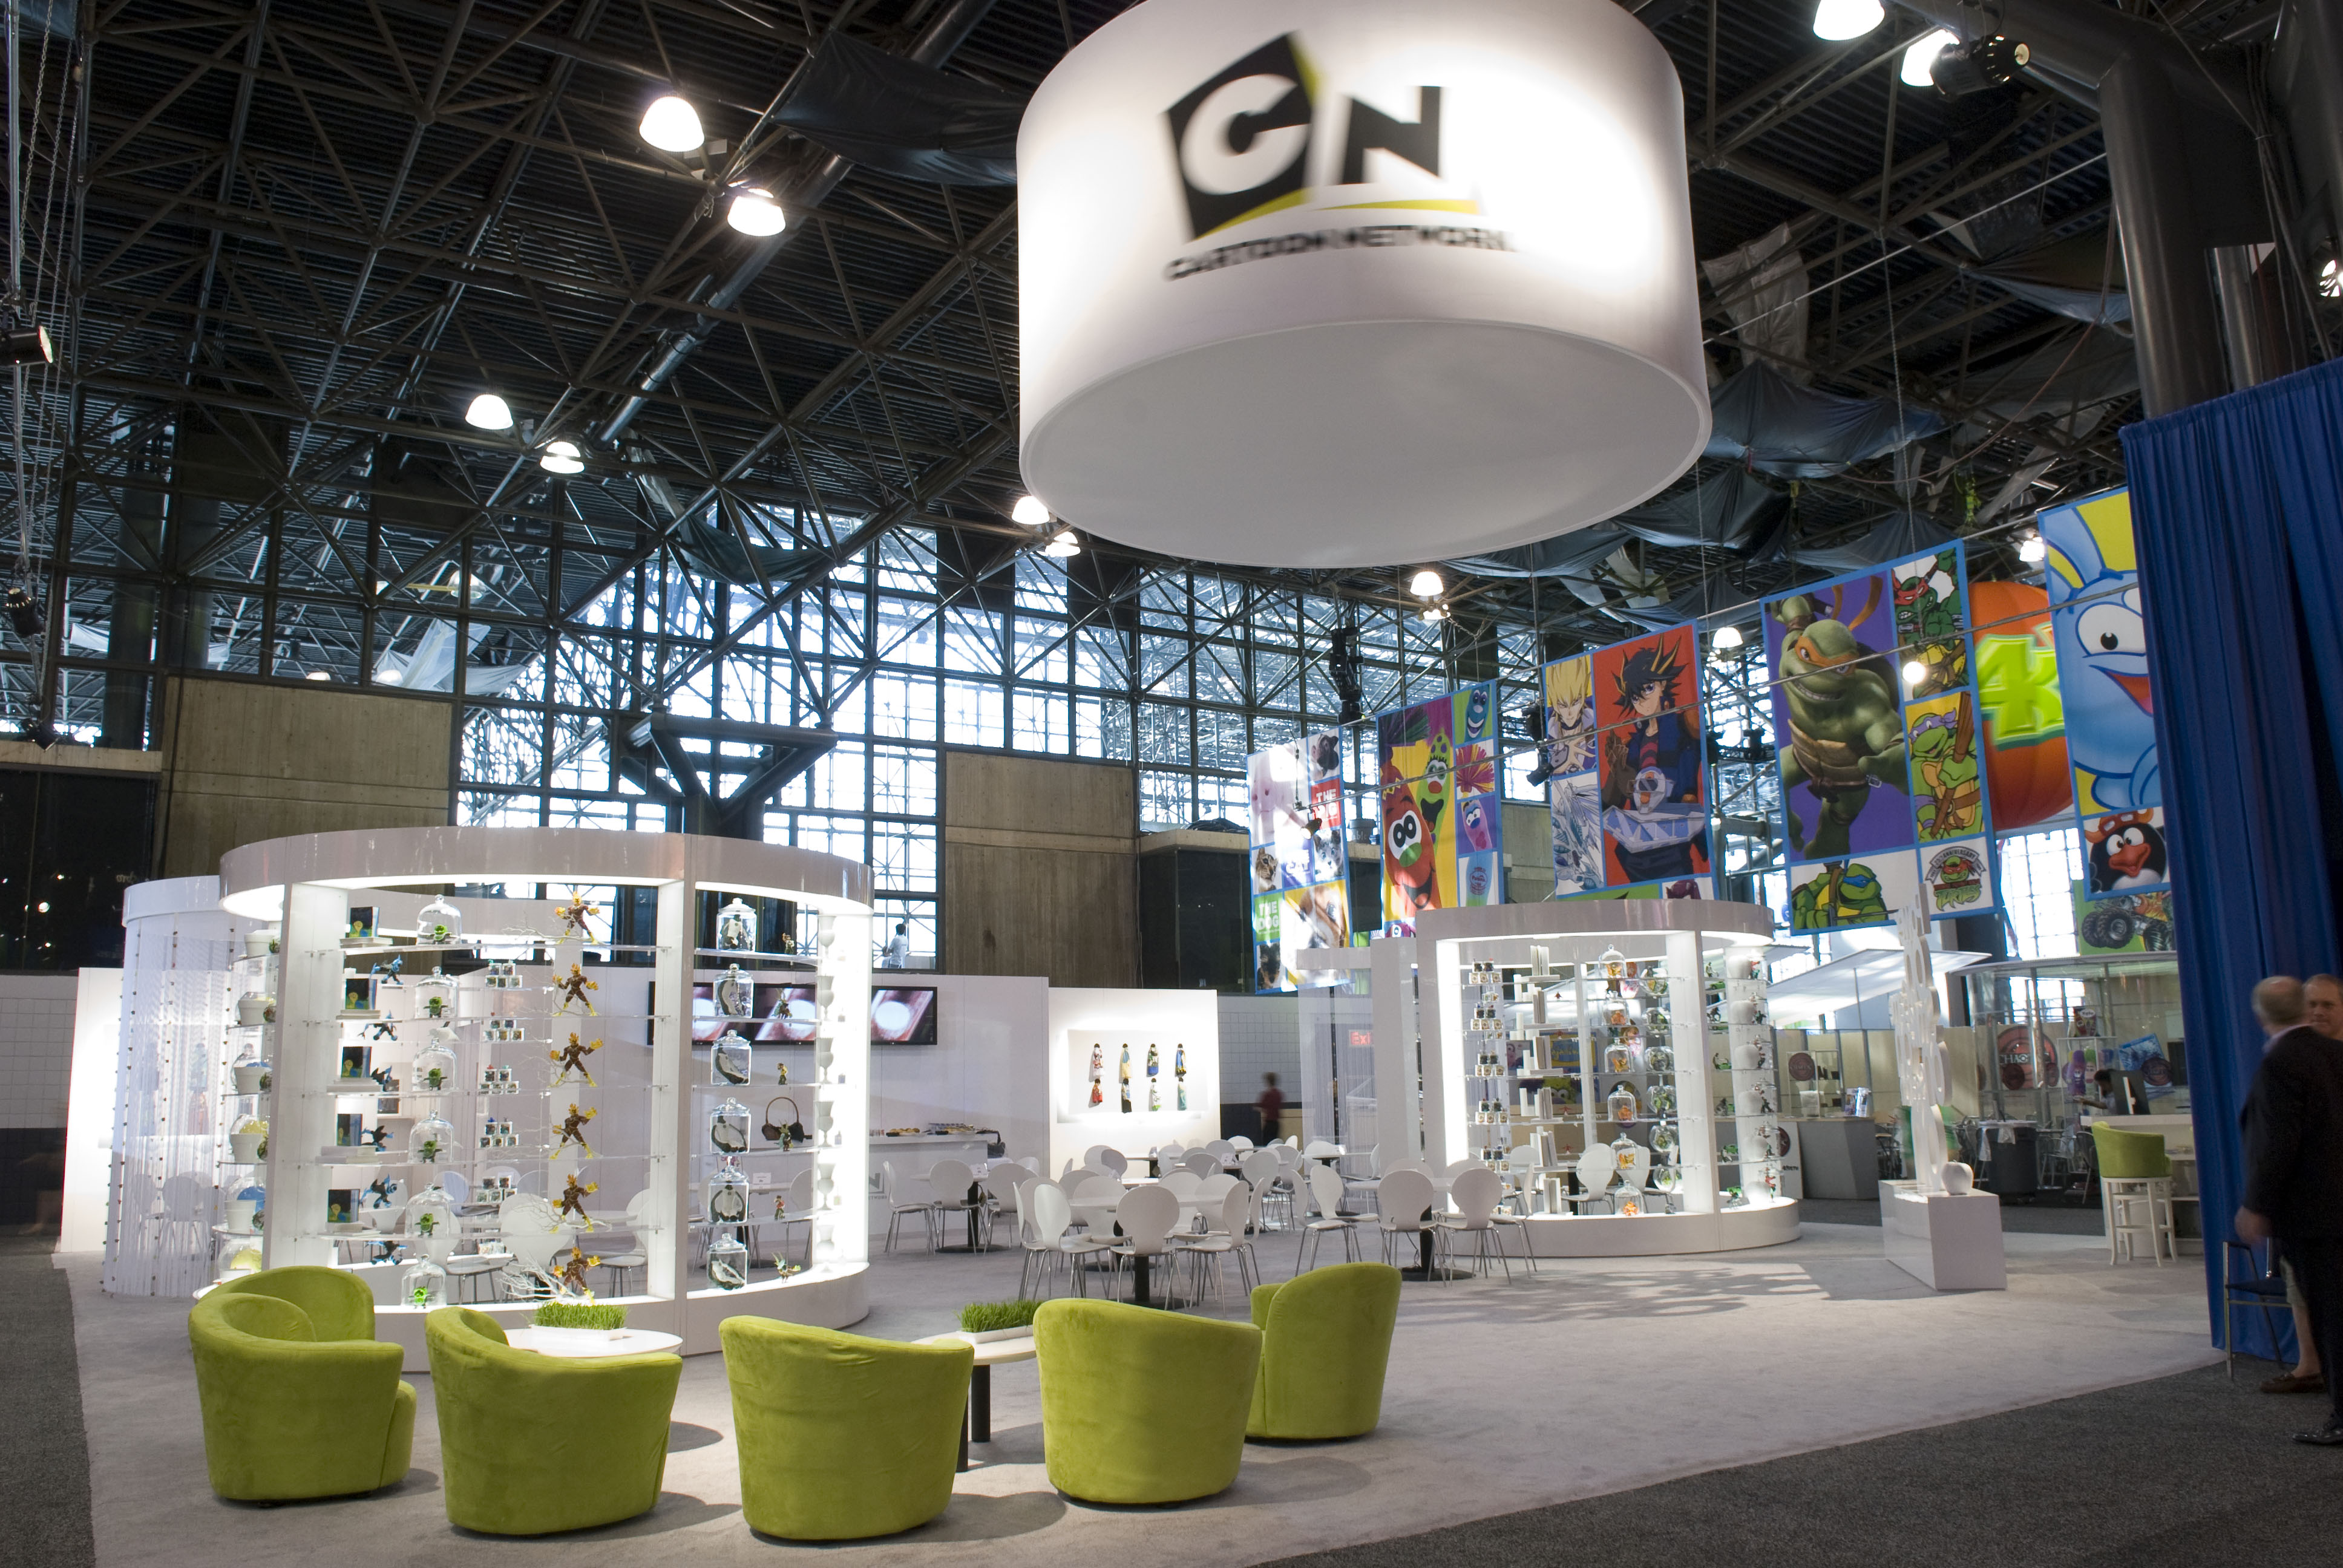 QView Full Size Cartoon Network Trade Show